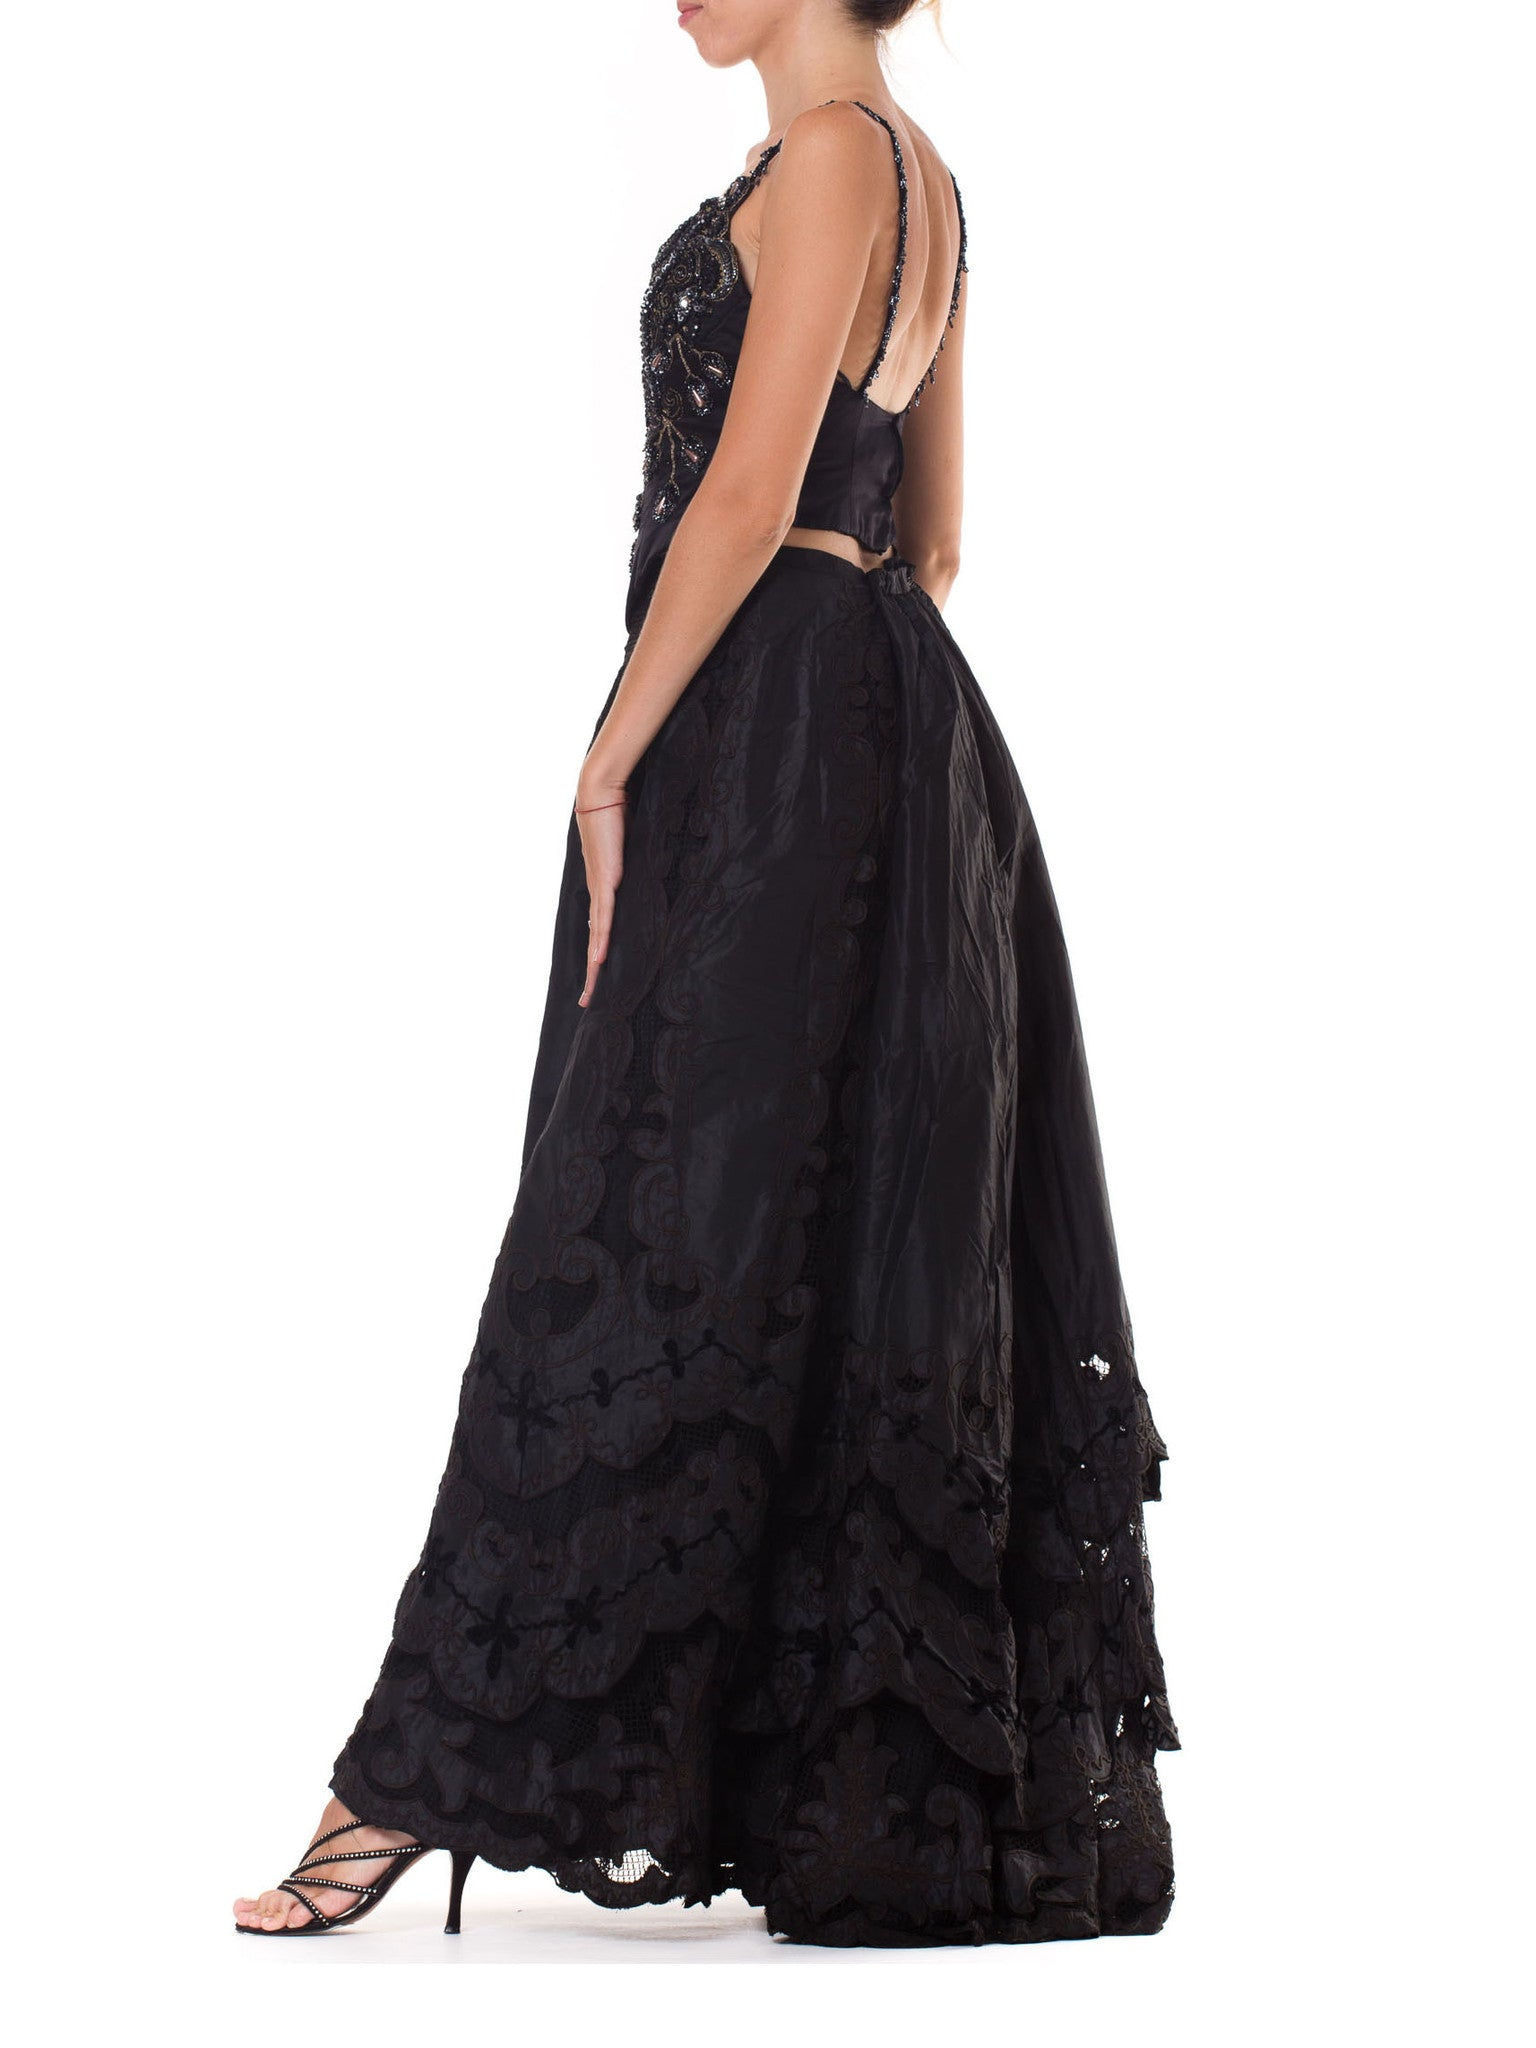 1800S Black Victorian Silk & Lace Tiered Skirt With Appliqués